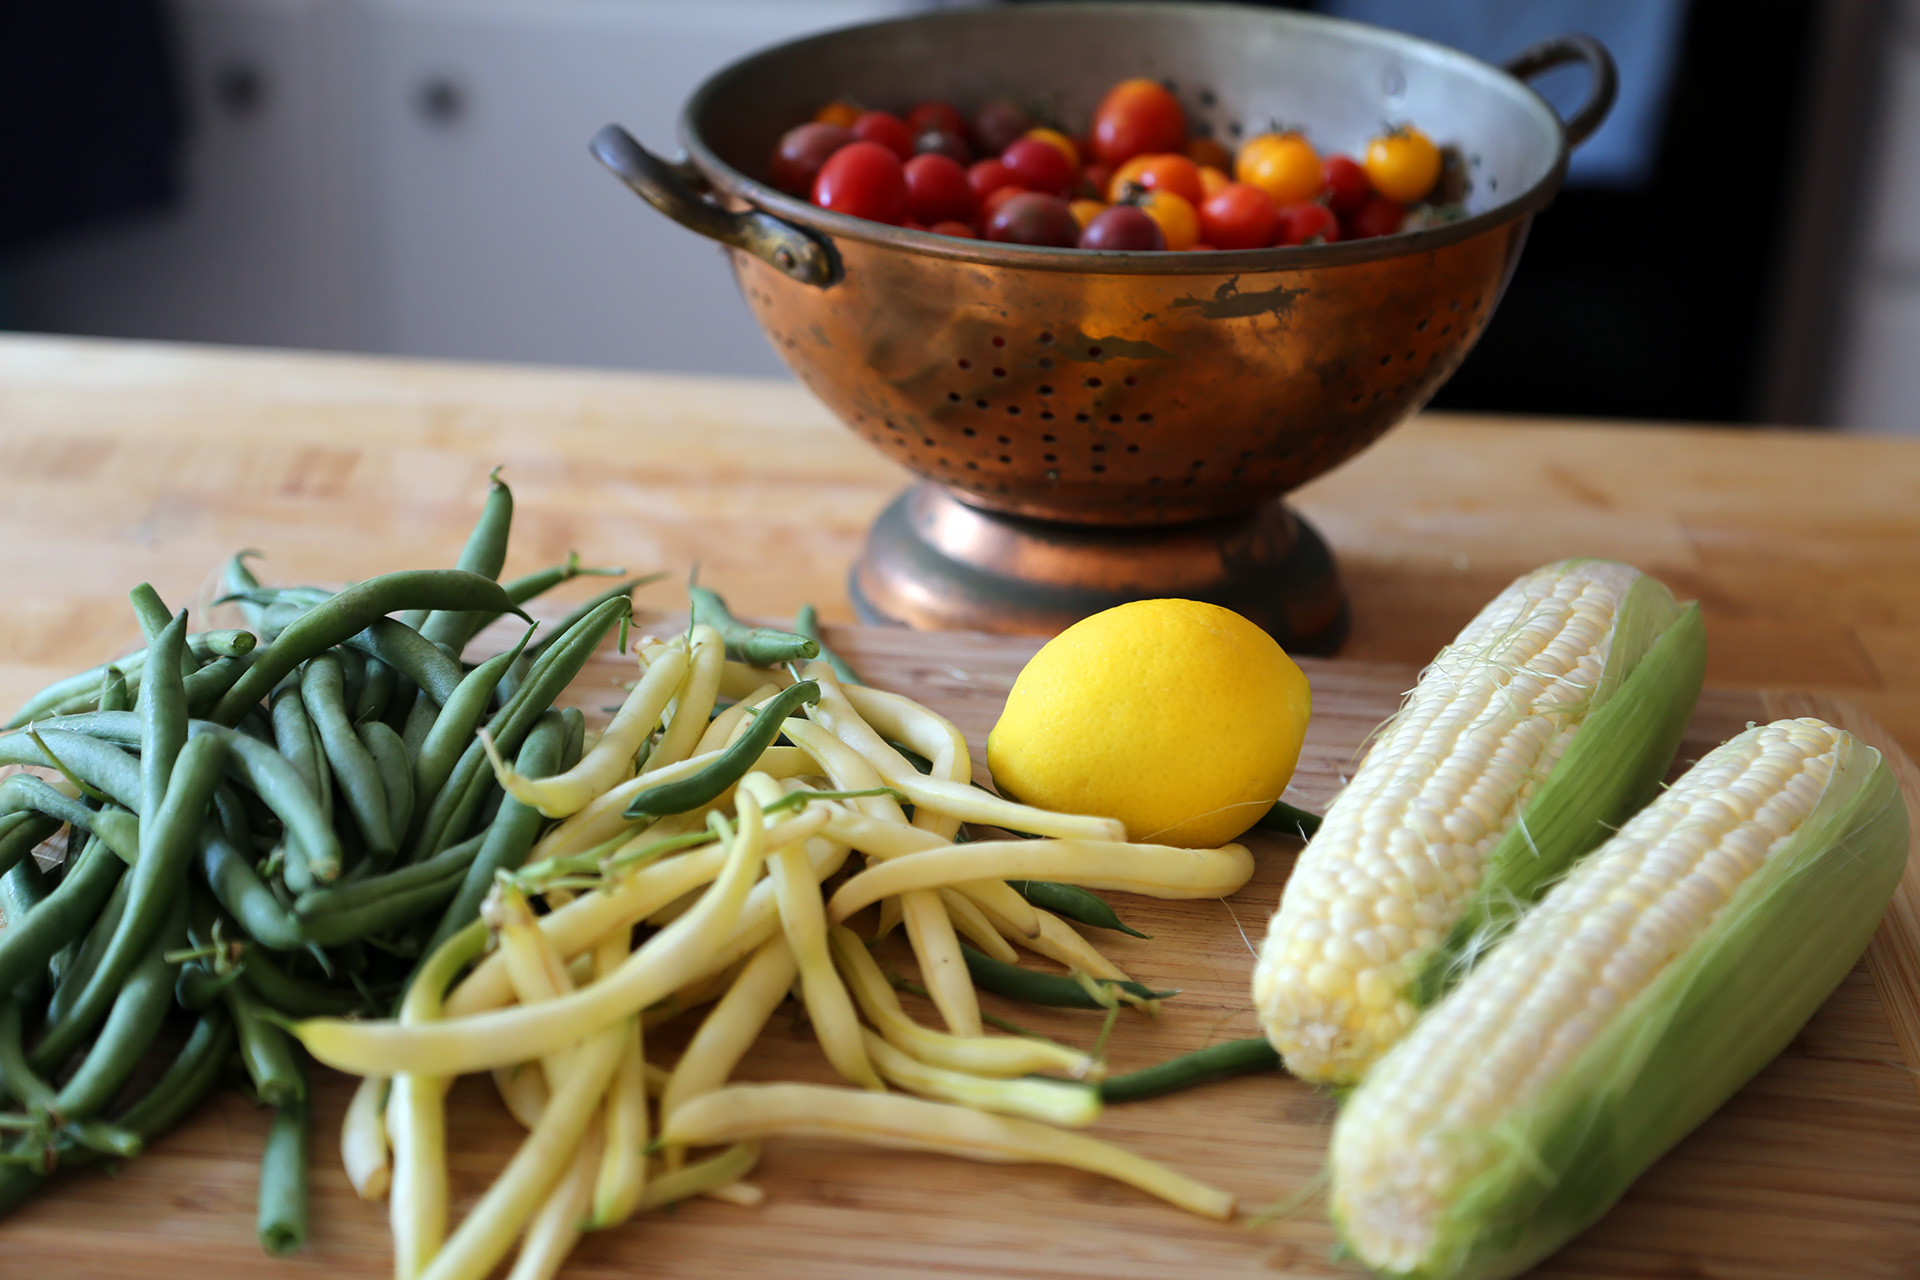 Ingredients for Corn, Green Bean, and Cherry Tomato Sauté